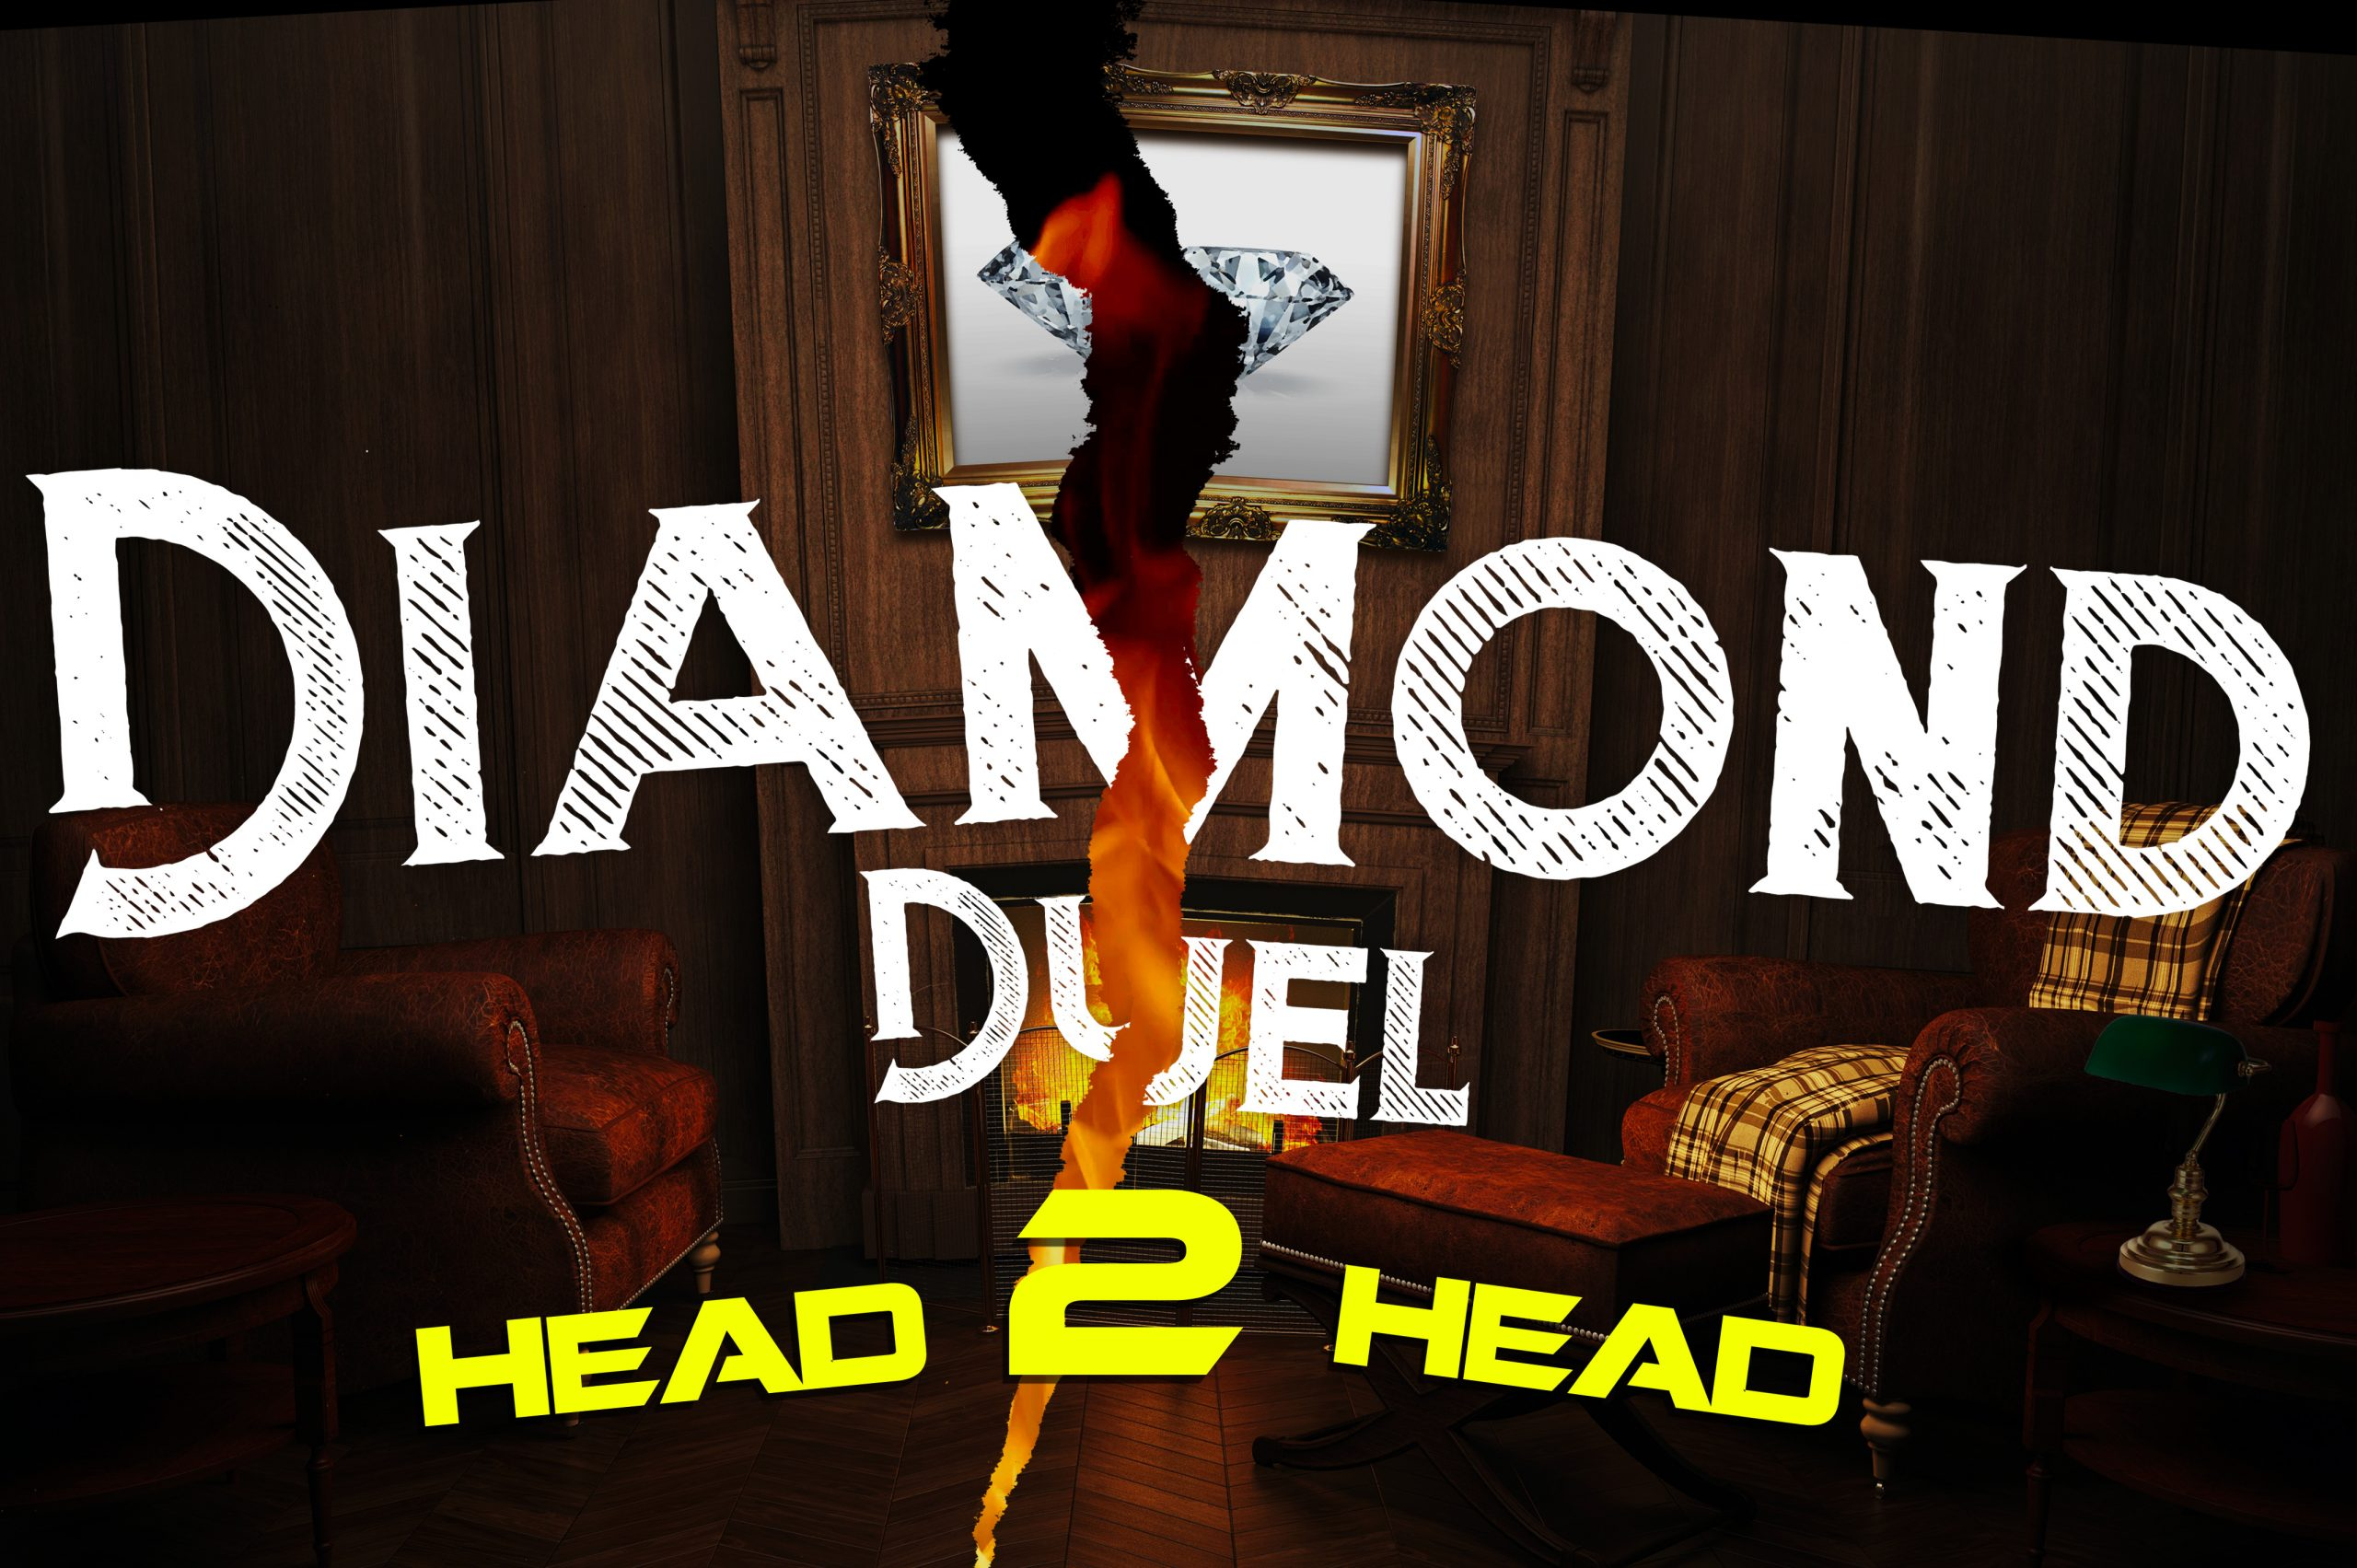 Diamond Duel head 2 head